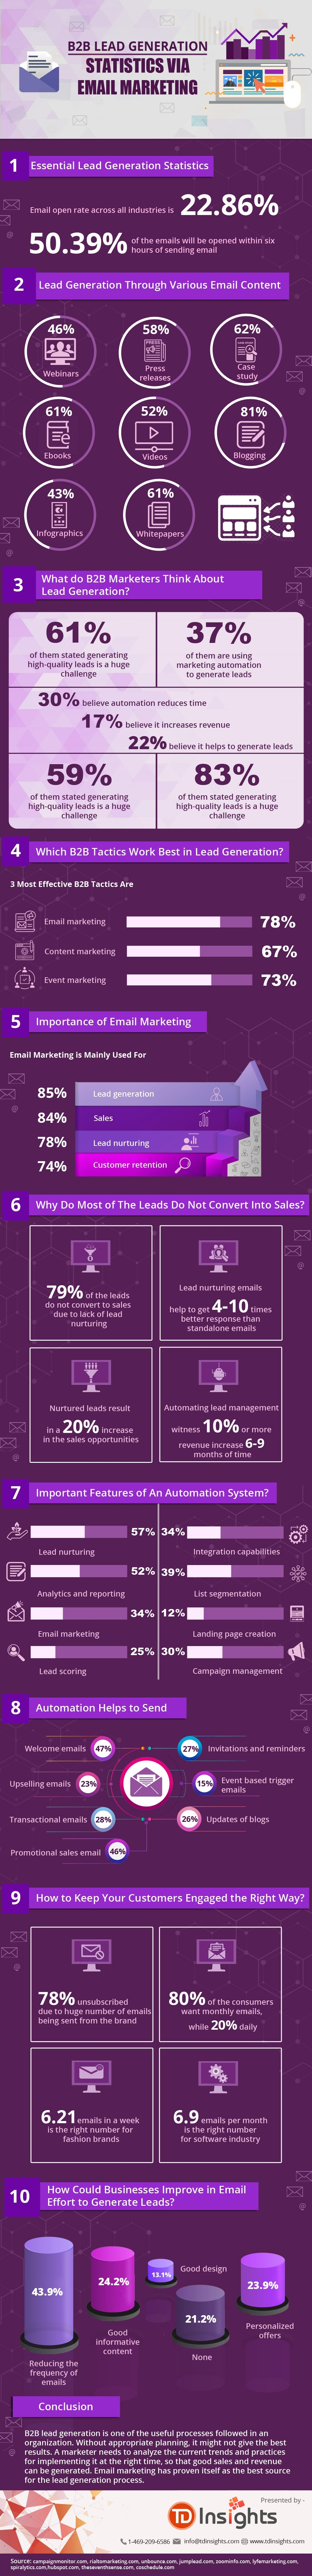 B2B Lead Generation Statistics via Email Marketing #infographic